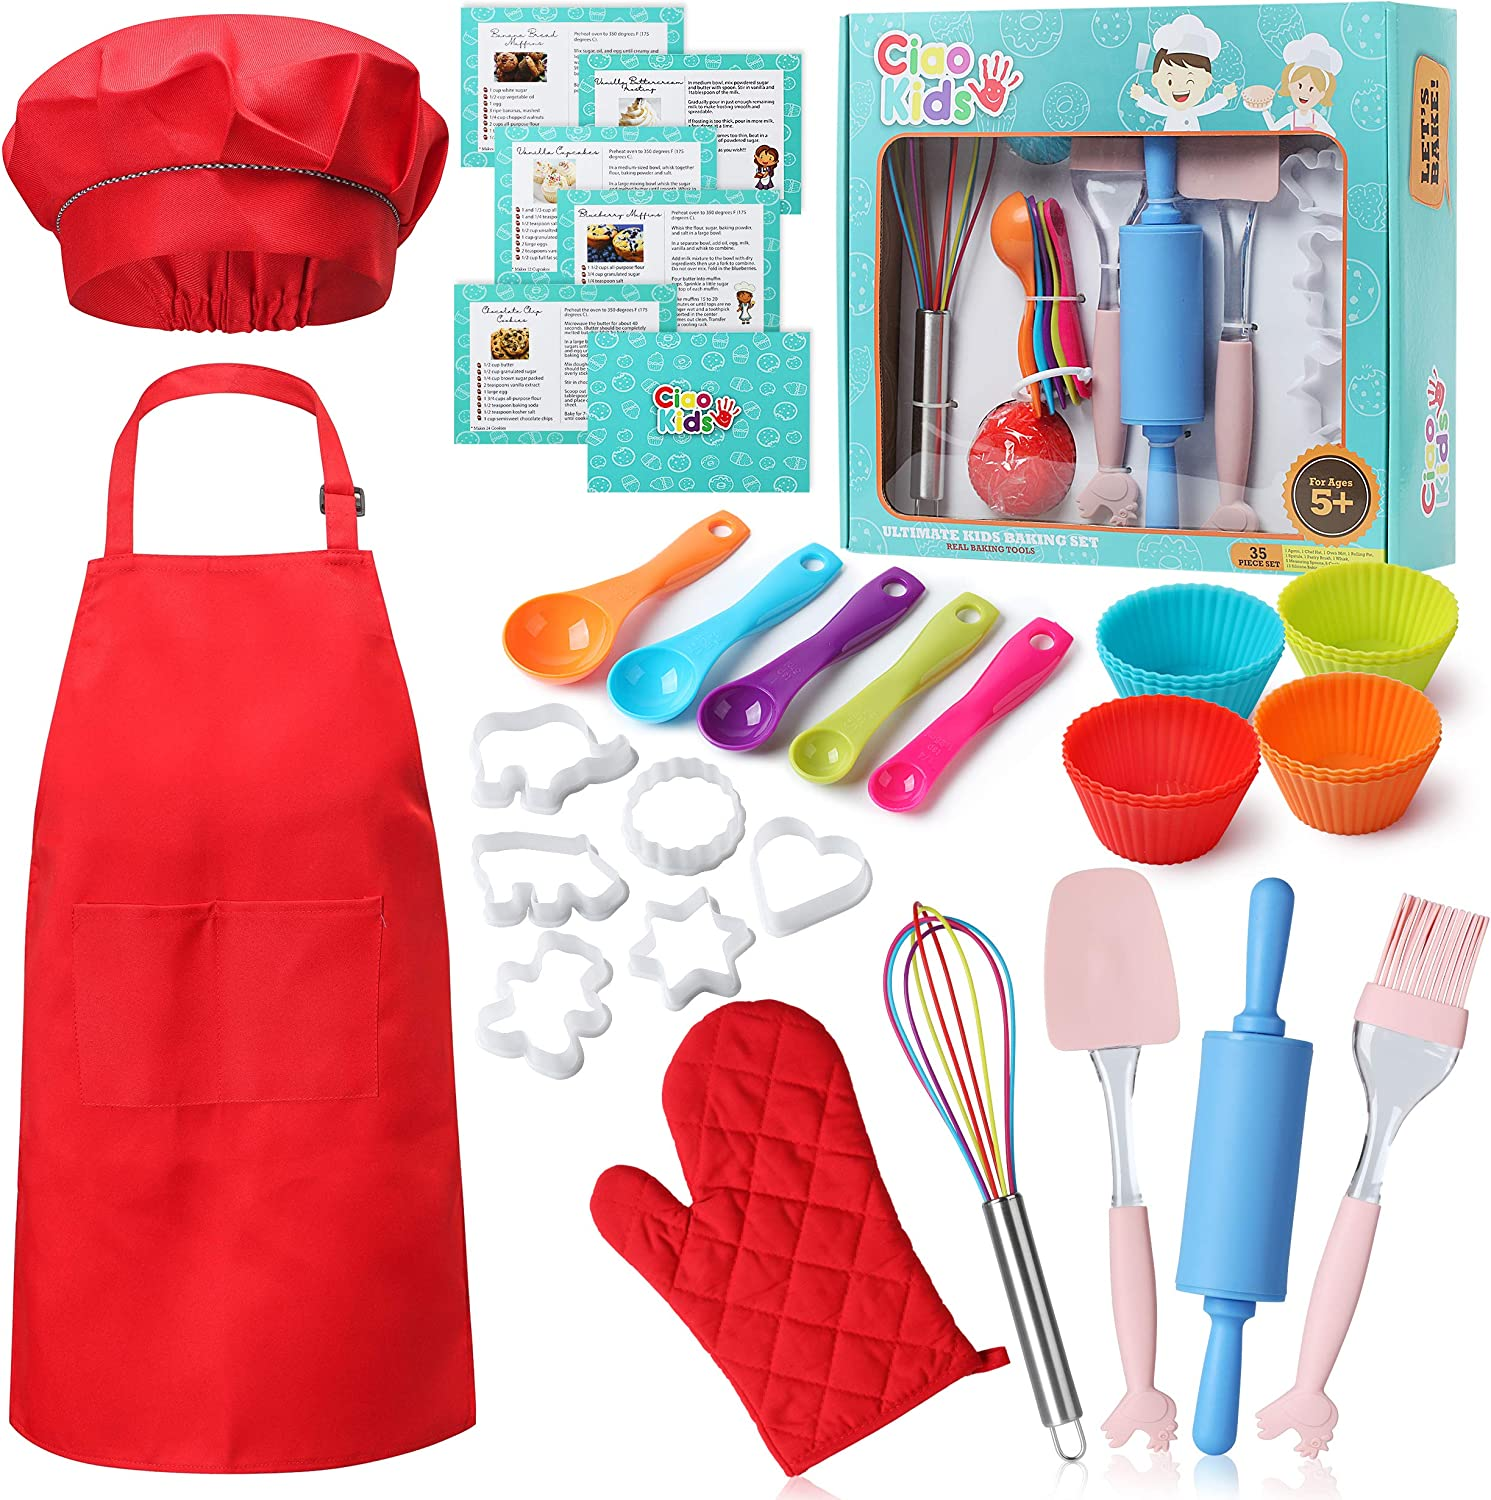 CiaoKids Real Kids Baking Set 35 Pcs includes Kids Apron, Chef Hat, Oven Mitt, Real Baking Tools and Recipes